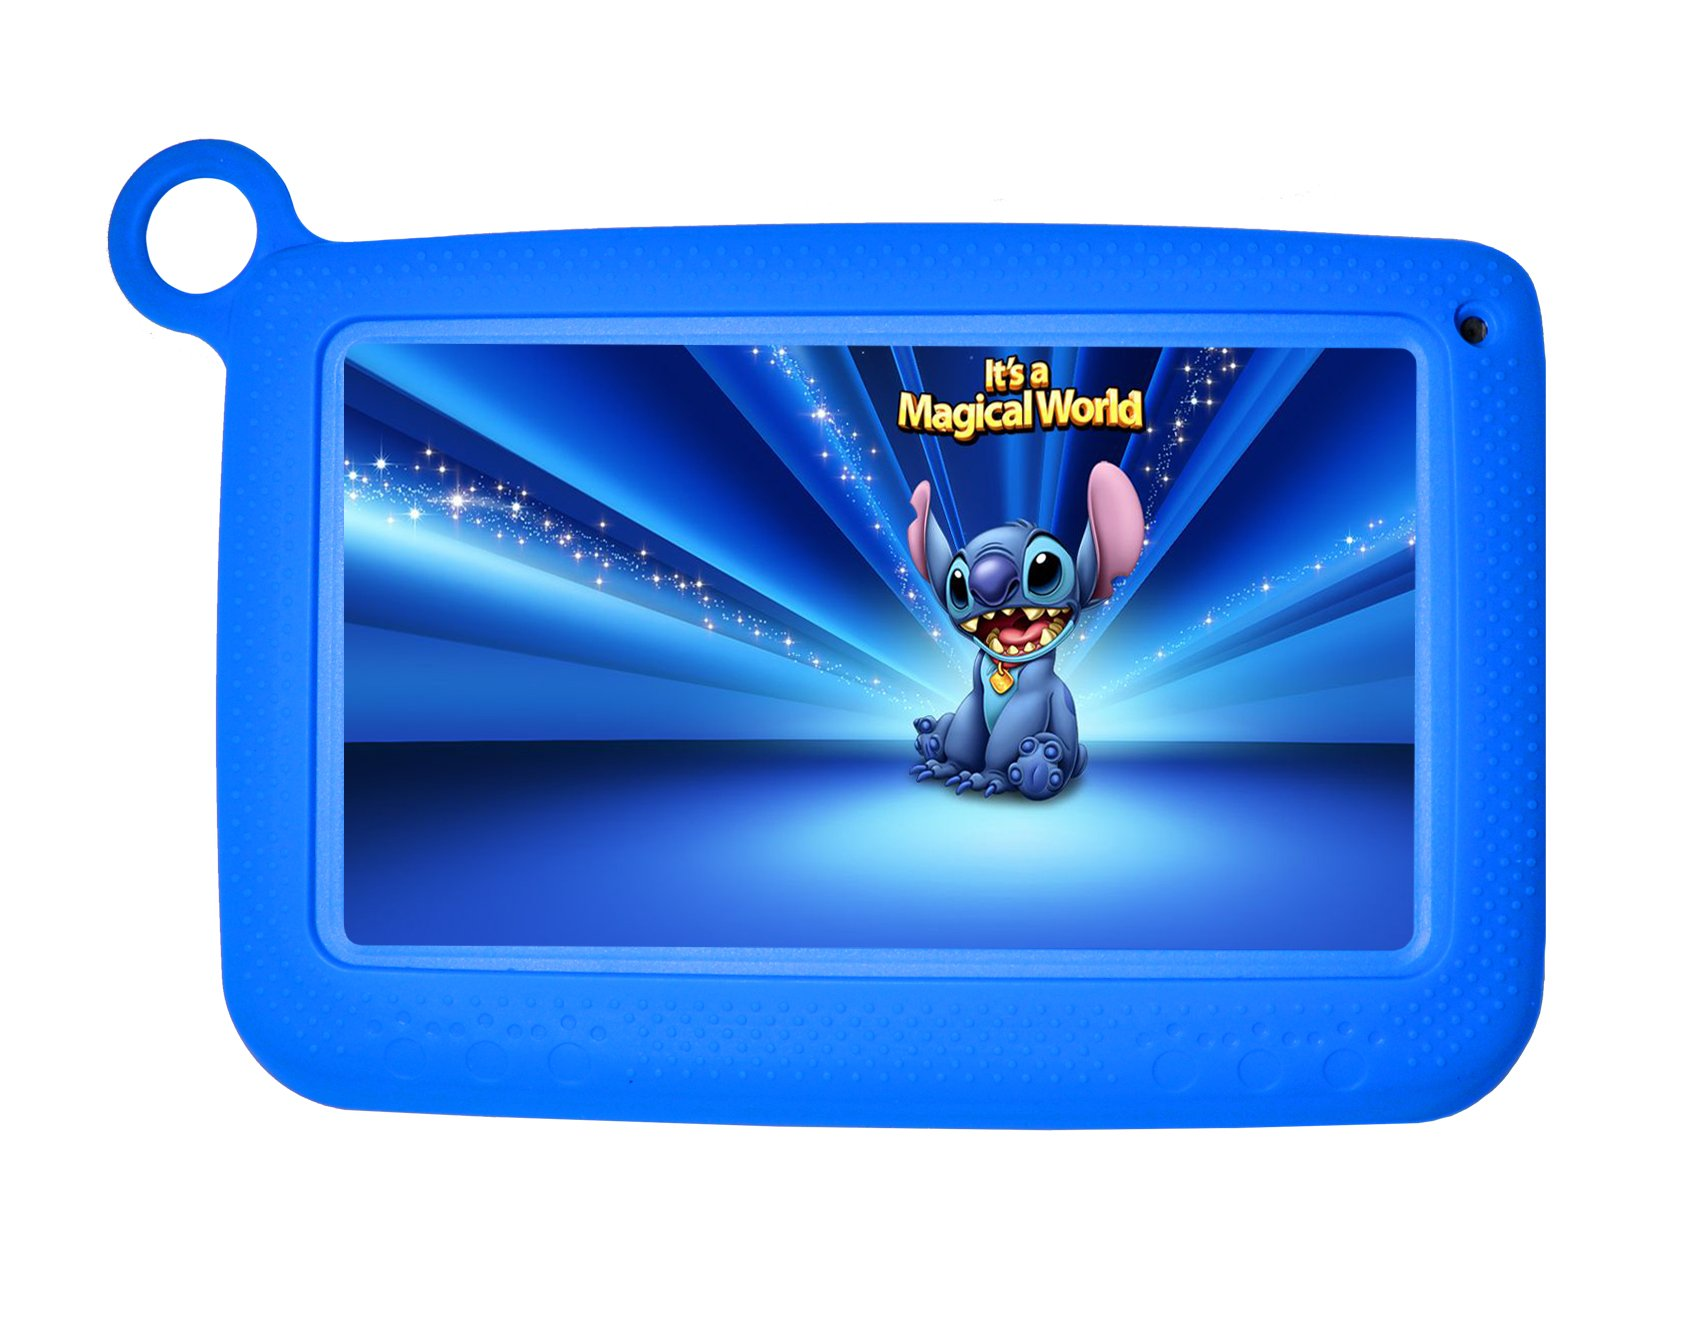 Kids Tablets Android5.1 7 Inch 1280x800 IPS Display 1GB RAM 8GB ROM with Parental Control Software - iWawa Wifi Camera 3D Game HD Video Supported TYD-716 (Blue)